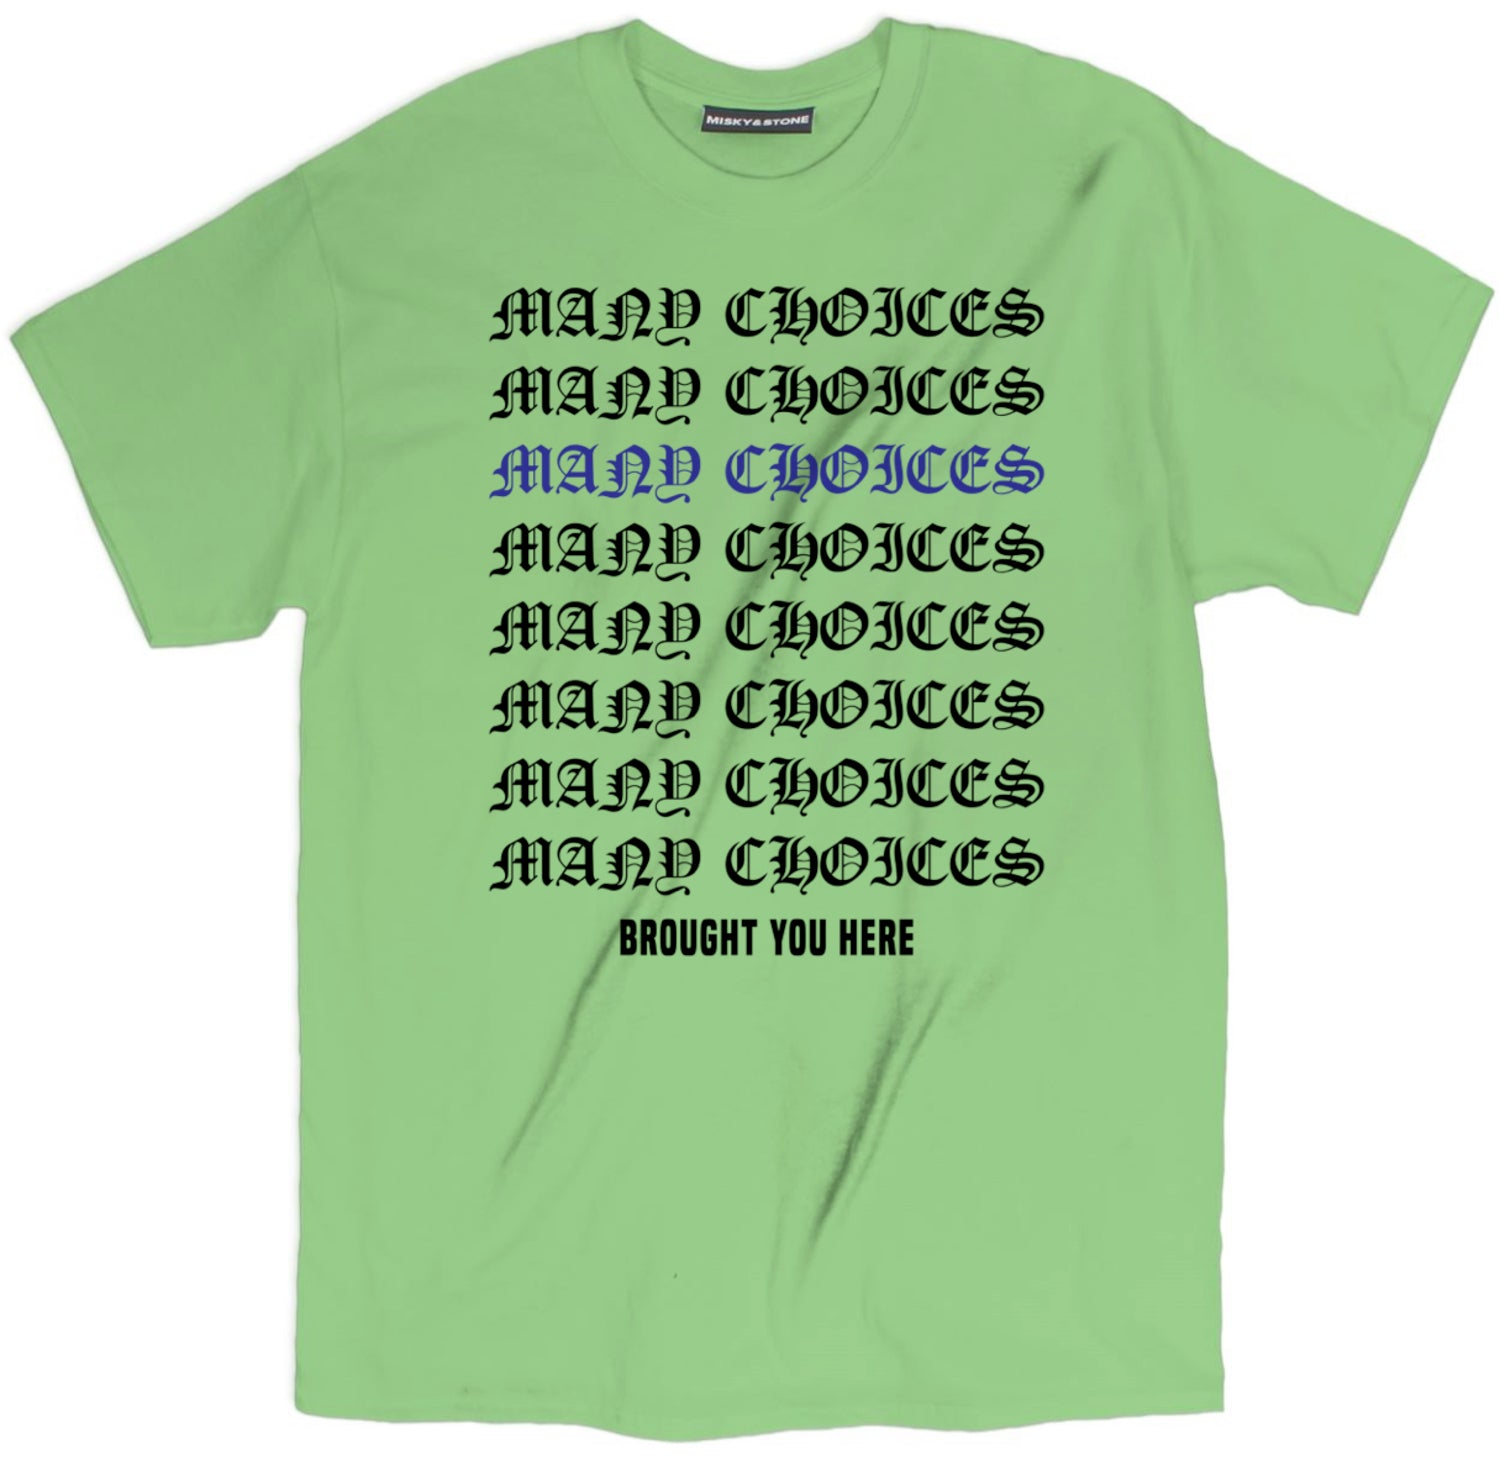 Many Choices Tee